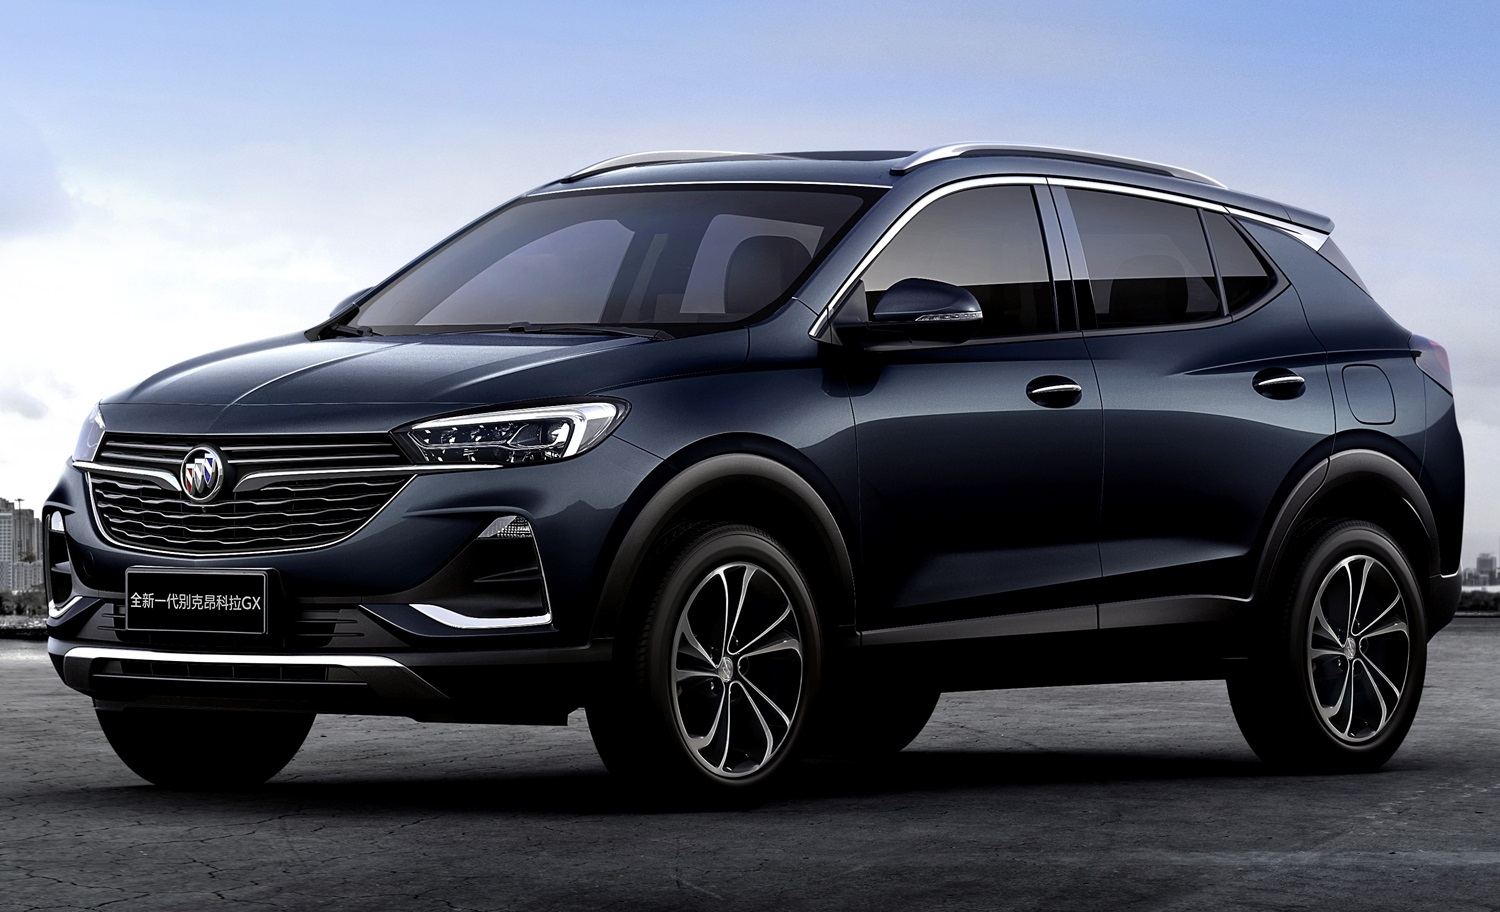 New Buick Encore Gx Images Released: Photo Gallery | Gm New 2022 Buick Encore Gx Preferred, Problems, Photos